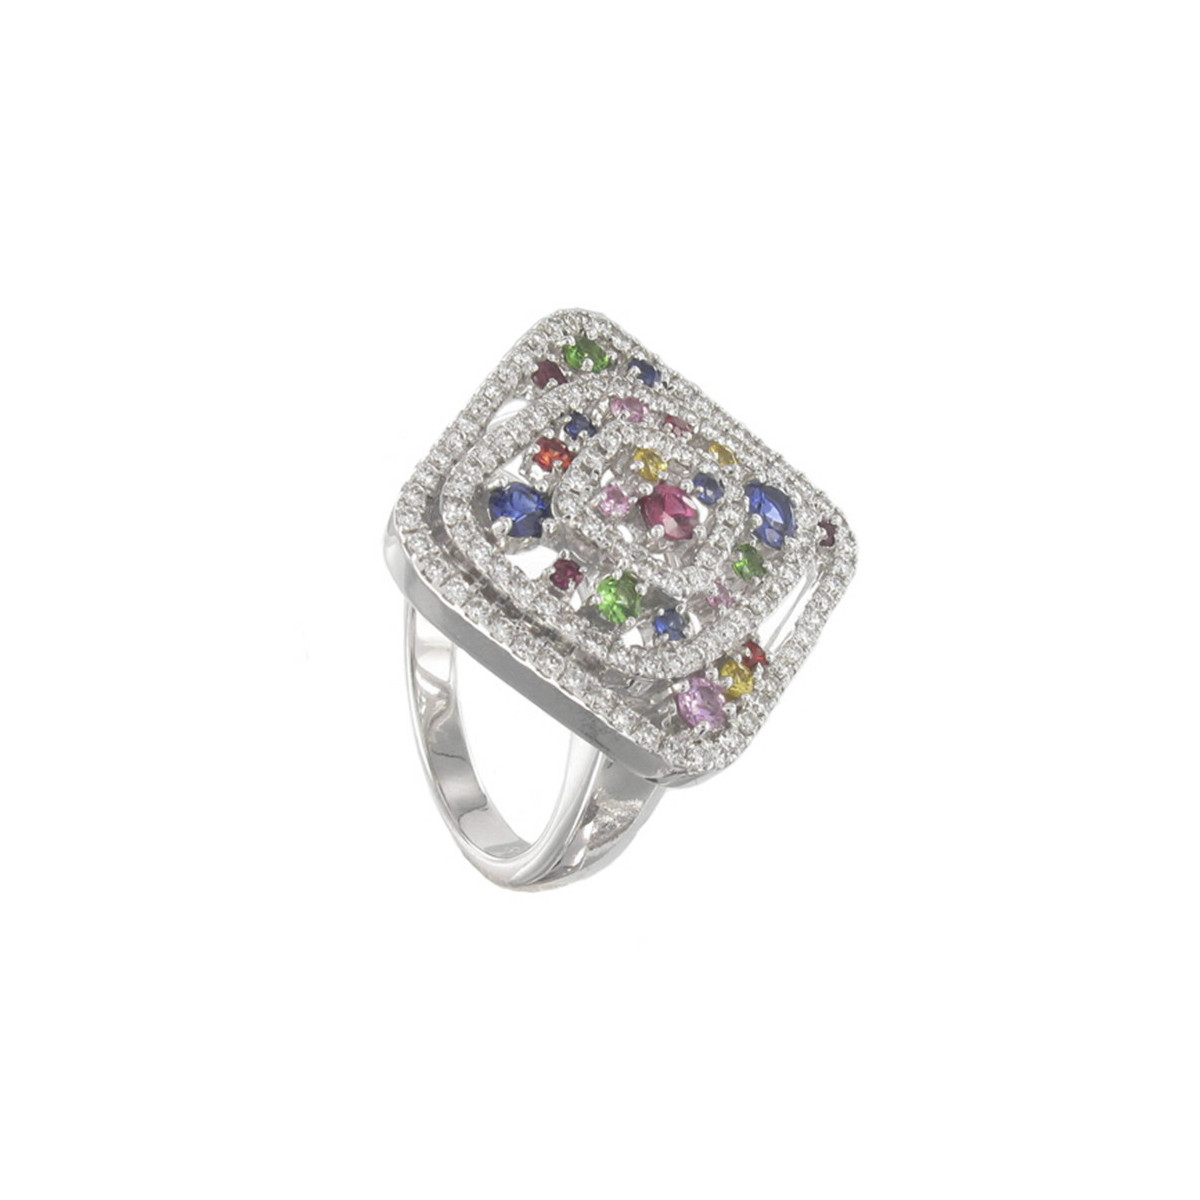 RING WITH COLORED STONES AND DIAMONDS